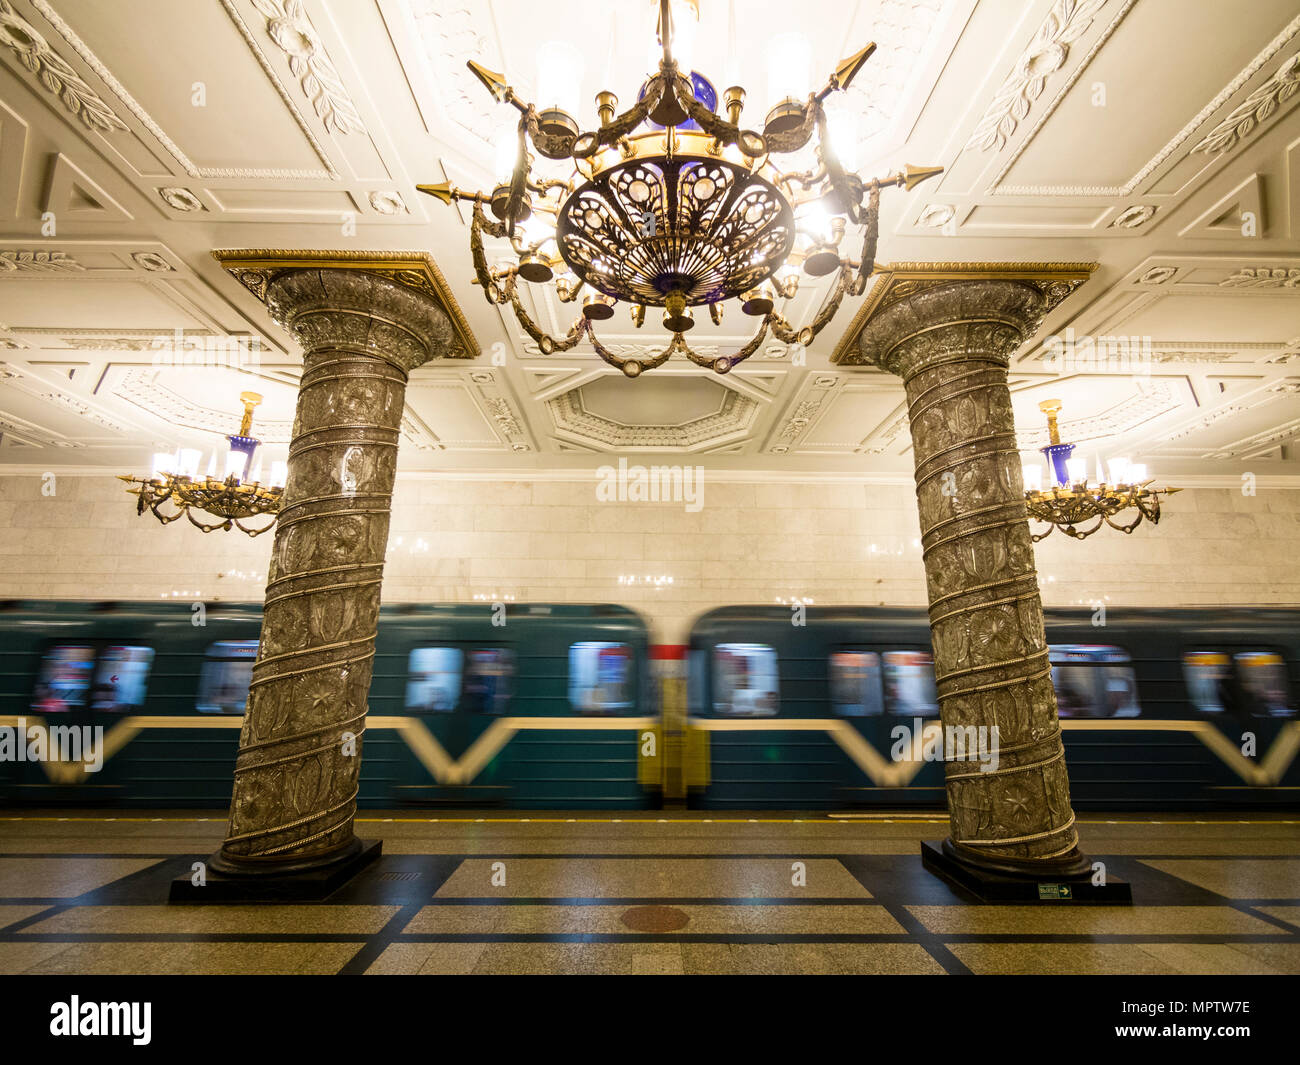 Saint Petersburg, Russia; Avtovo Metro Station, built in 1955 Stock Photo